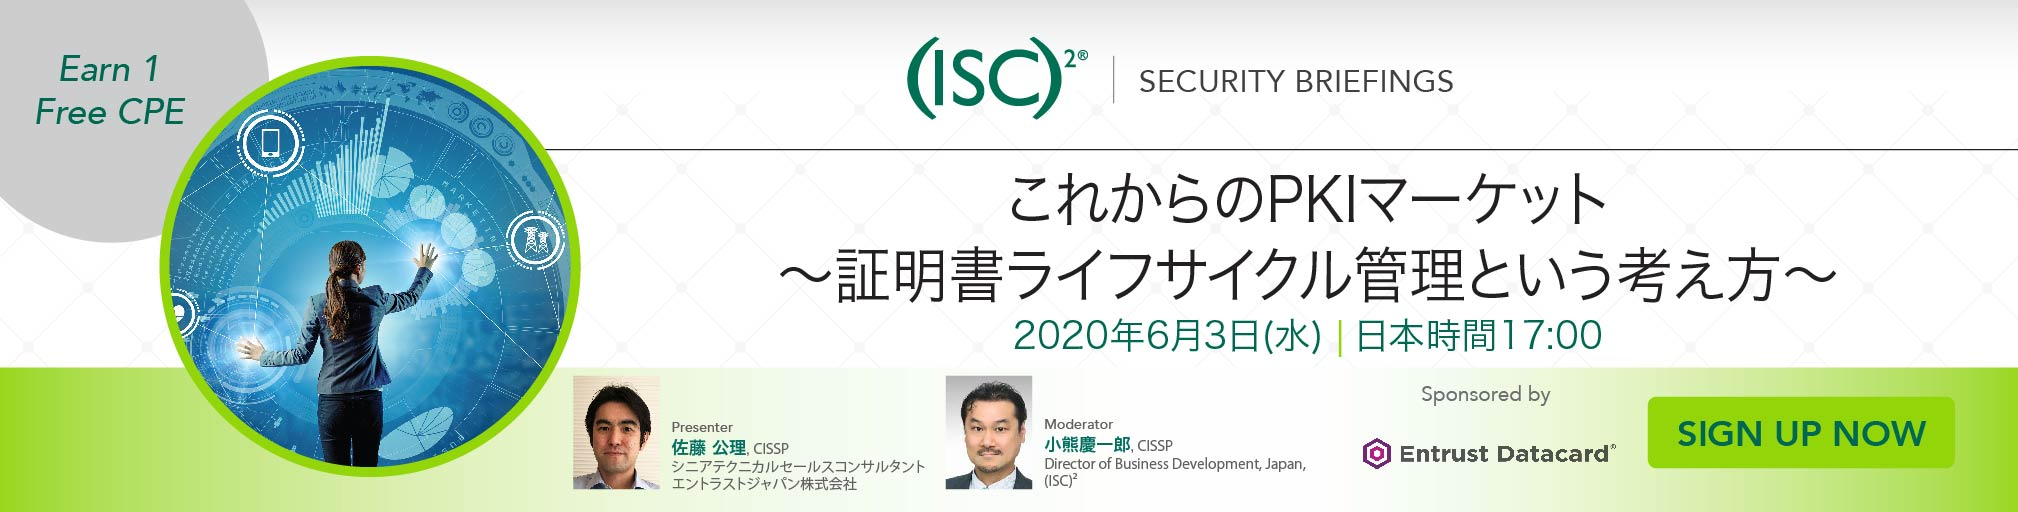 Japan-webinar-banner-creation_ Entrust-Japan 3June_0425_H_968x245